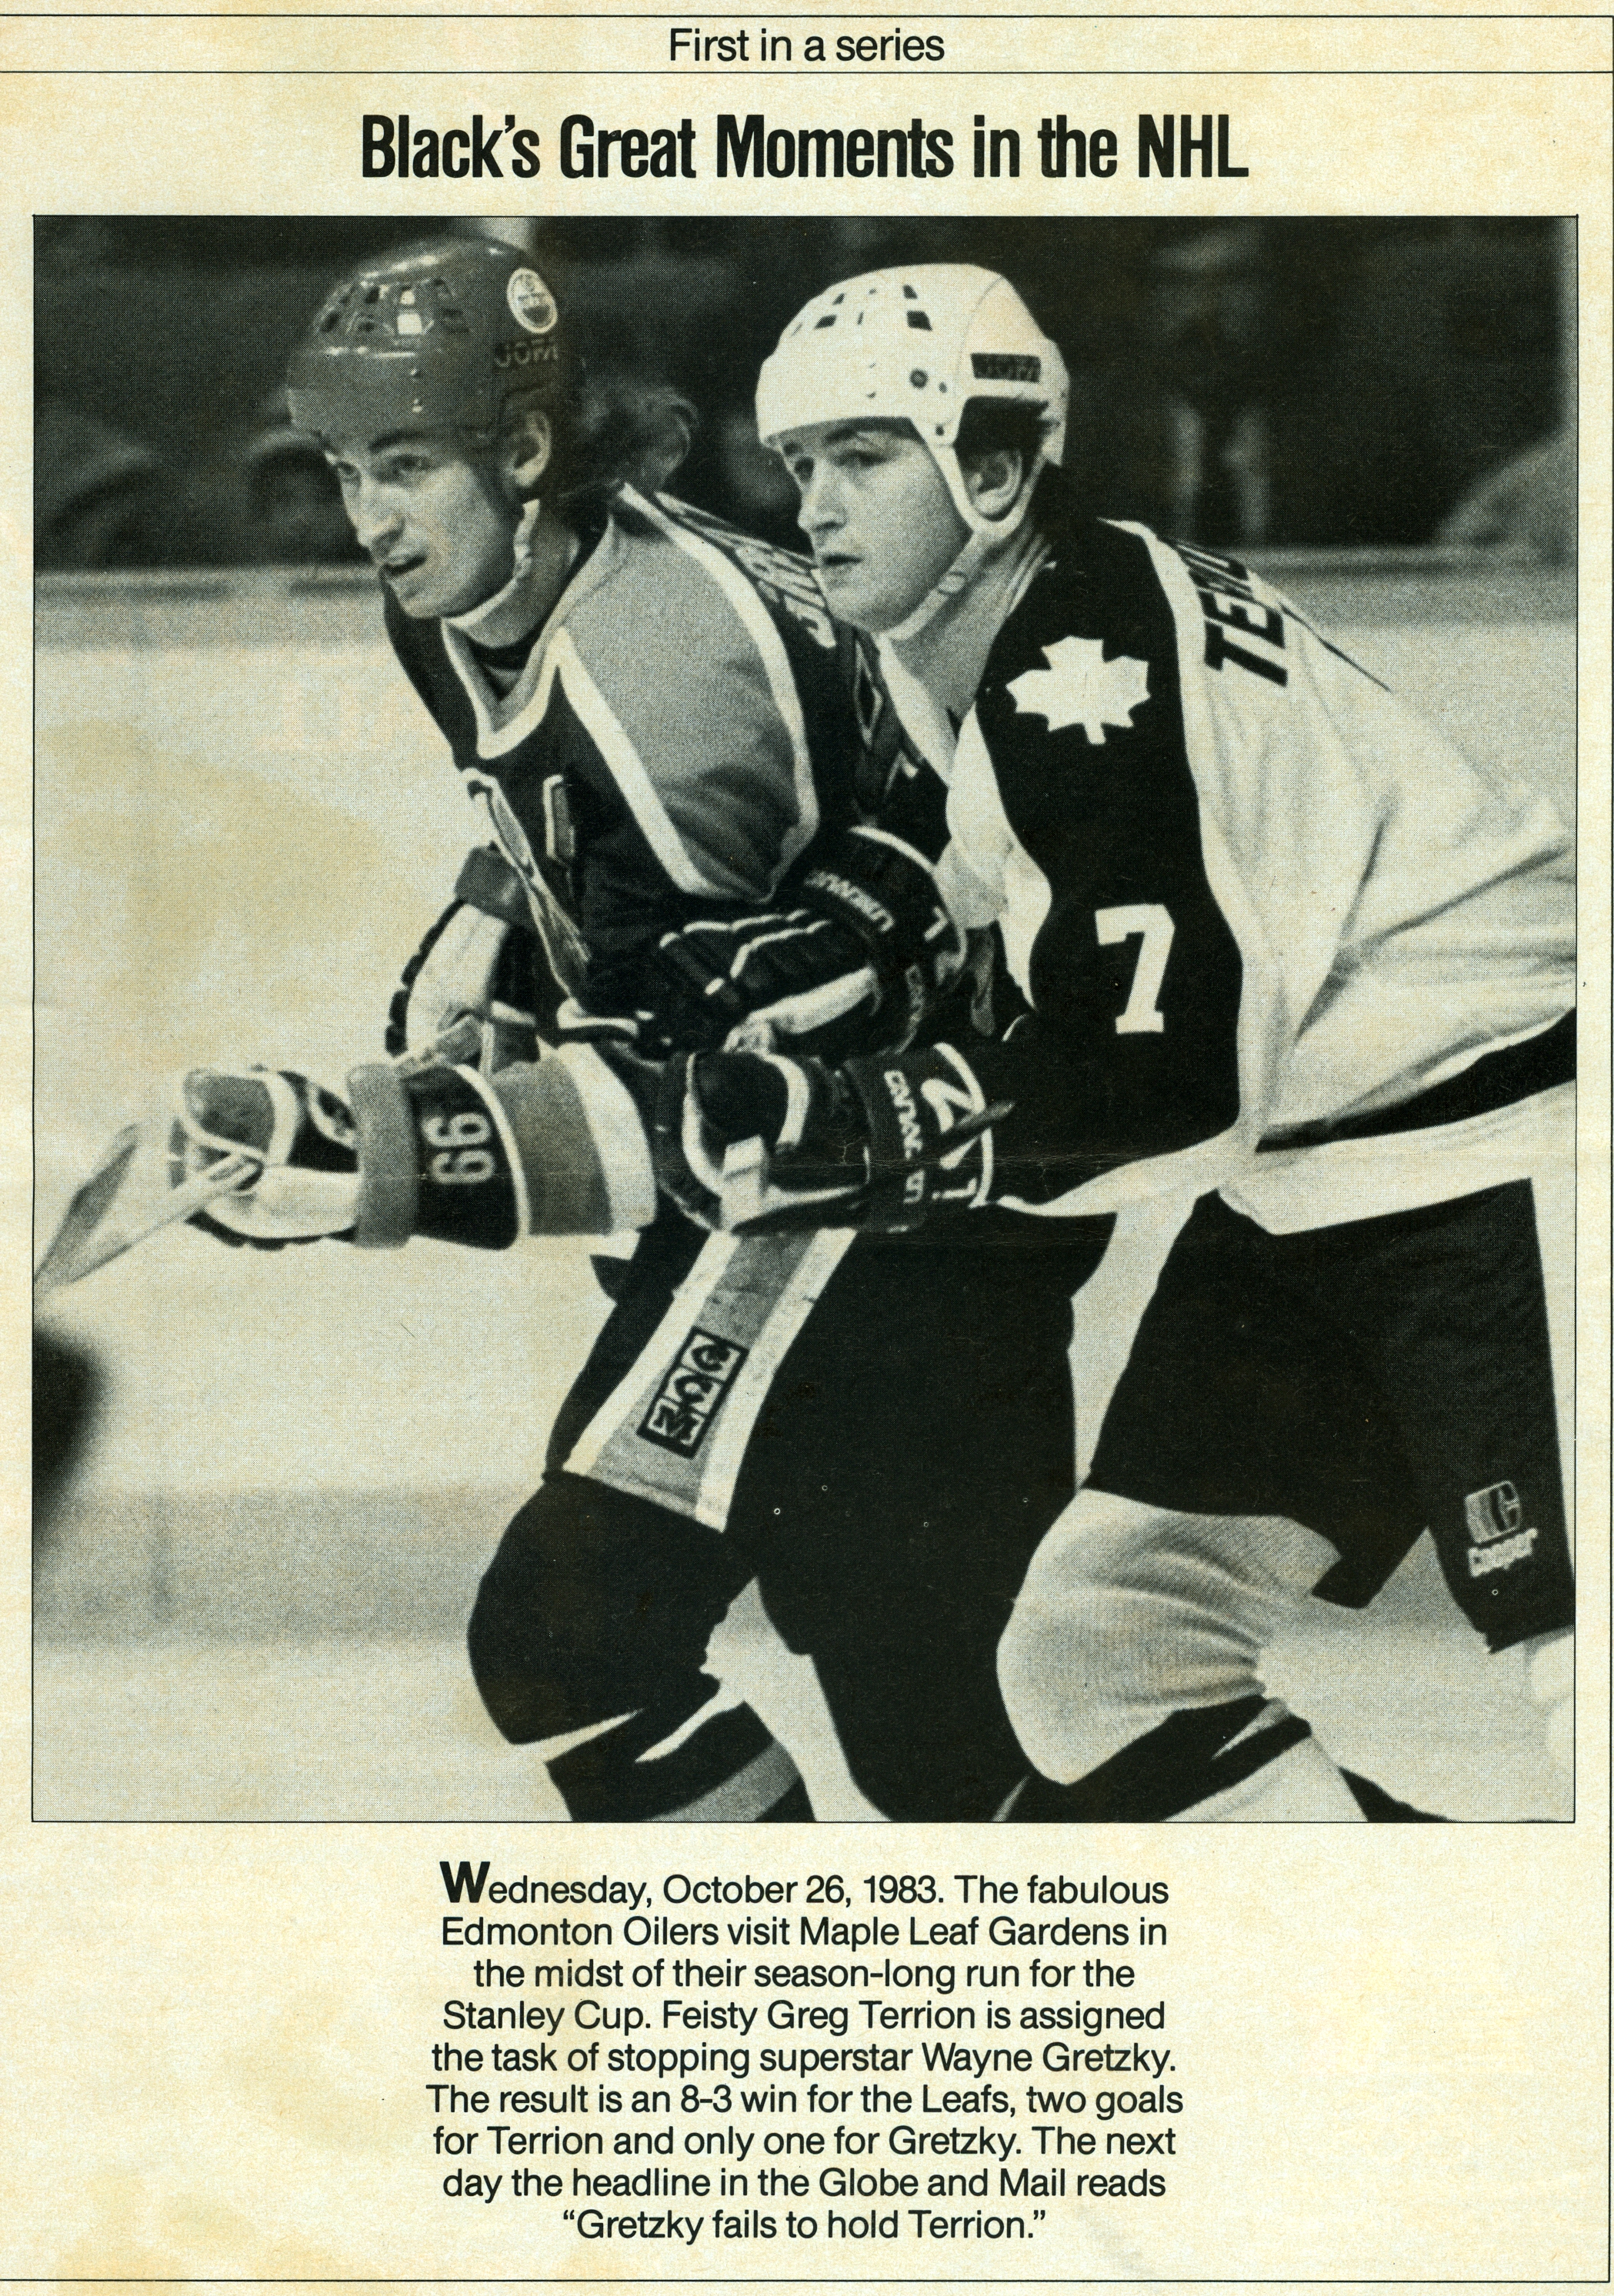 Greg Terrion-Wayne Gretzky 1983